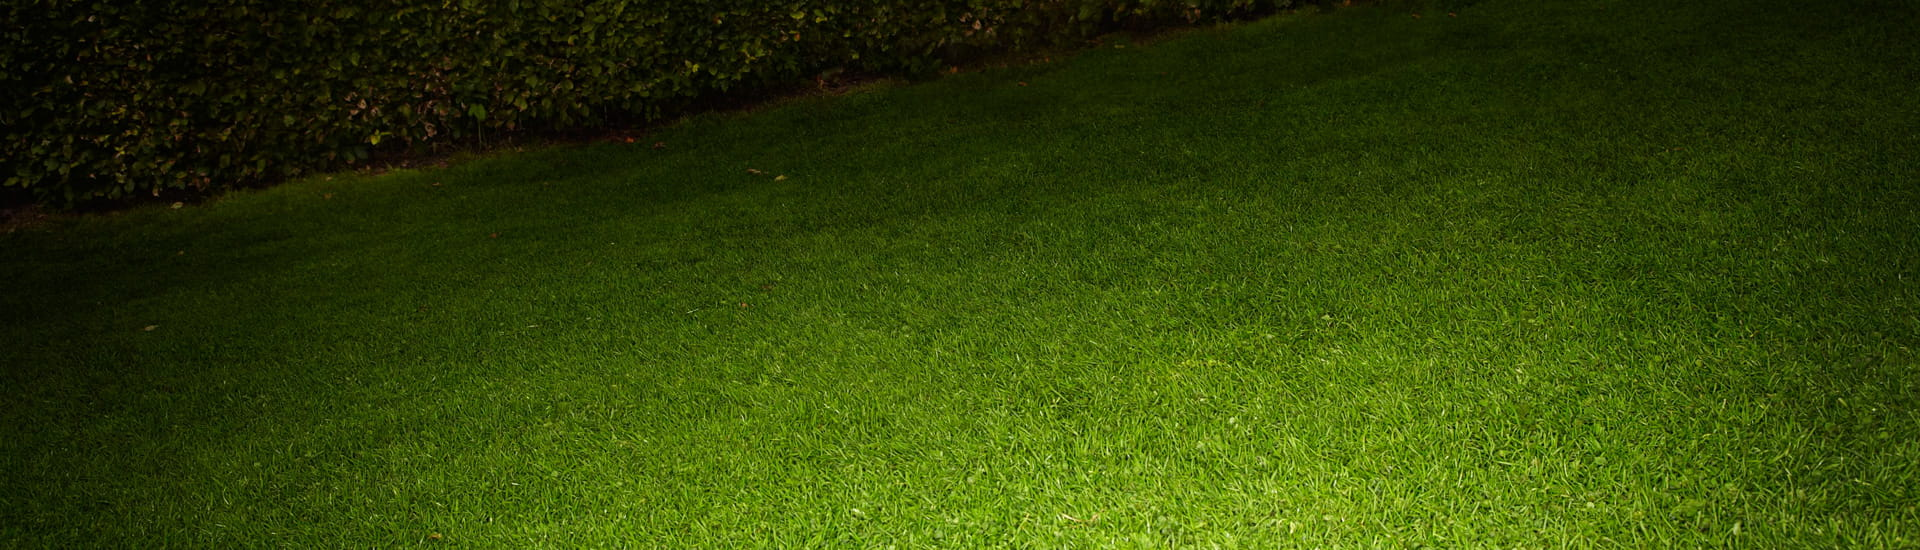 Dark hedge and green grass